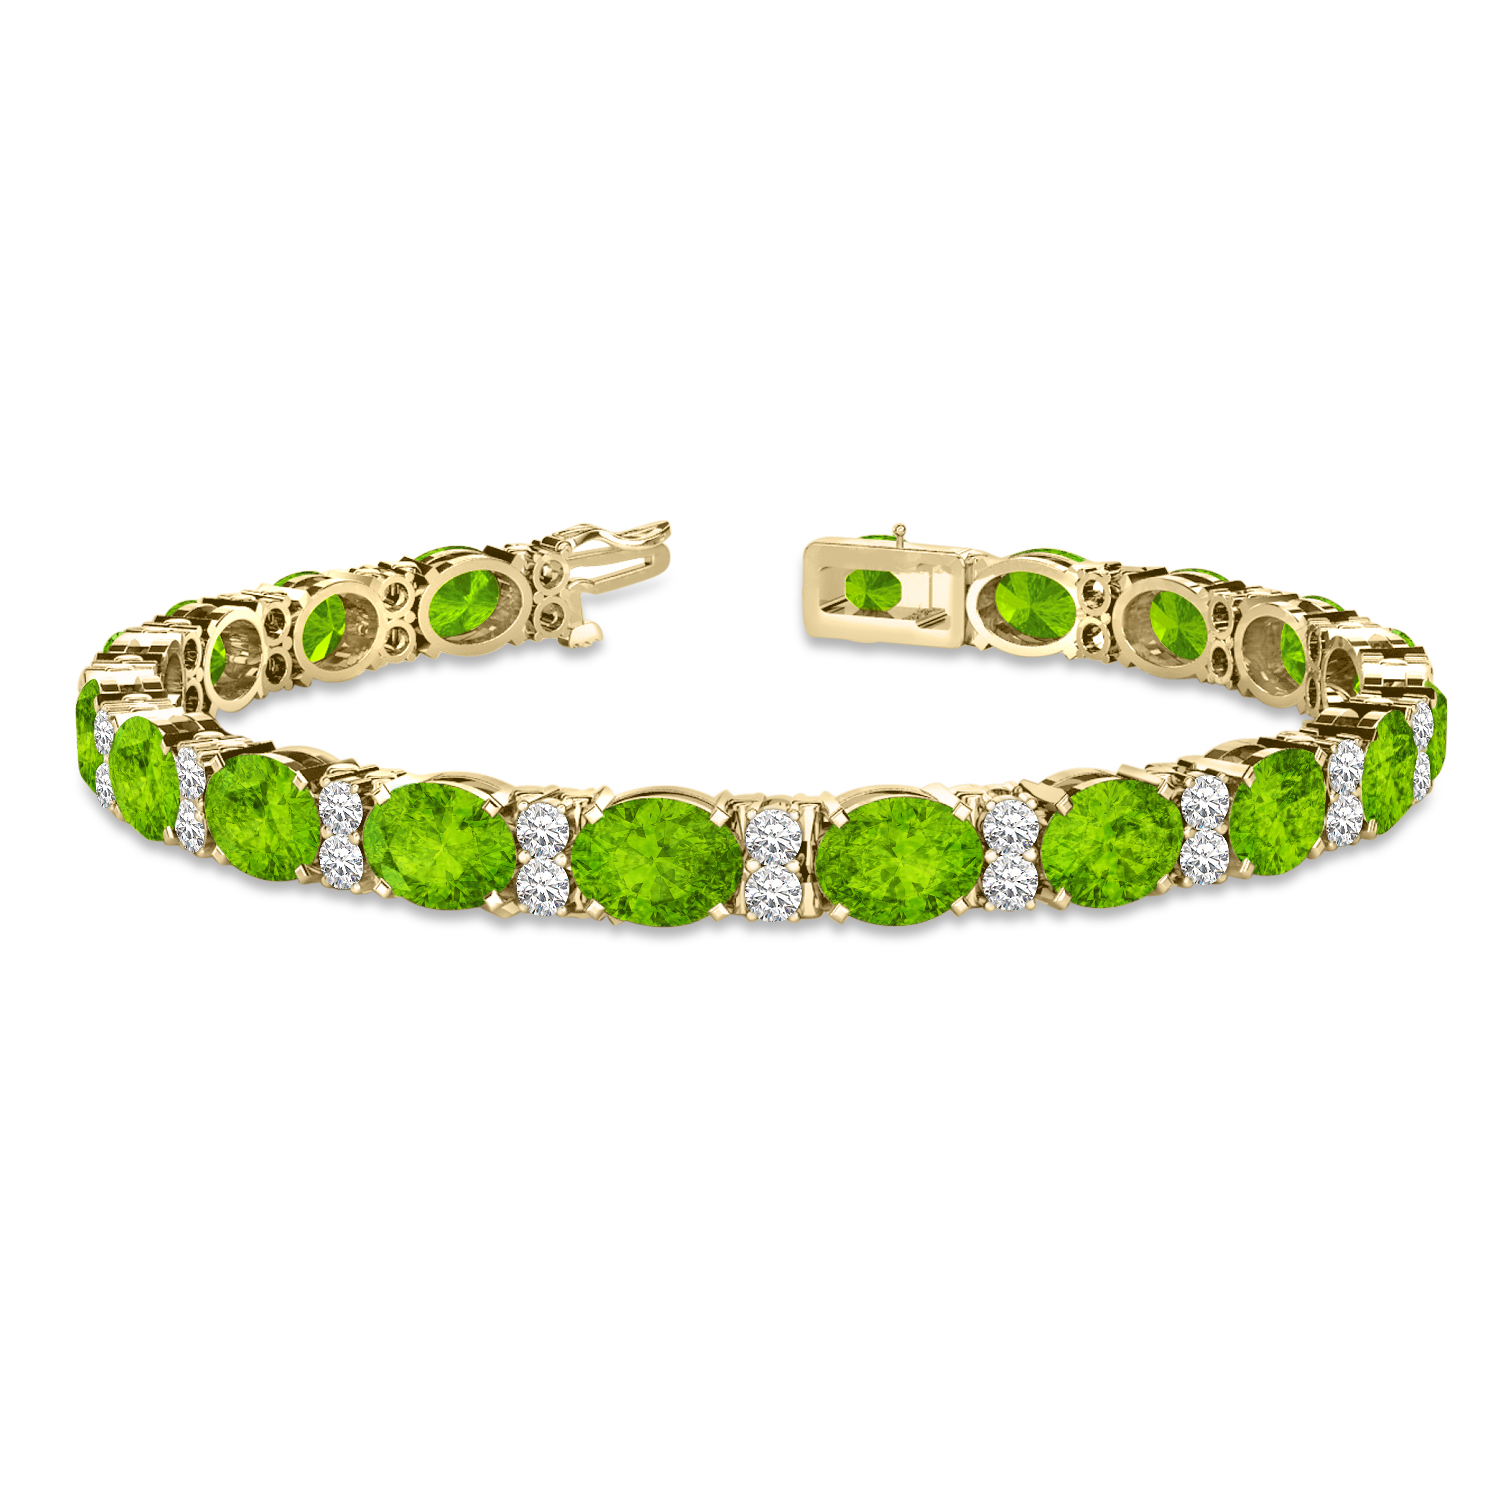 Diamond & Oval Cut Peridot Tennis Bracelet 14k Yellow Gold (13.62ctw)